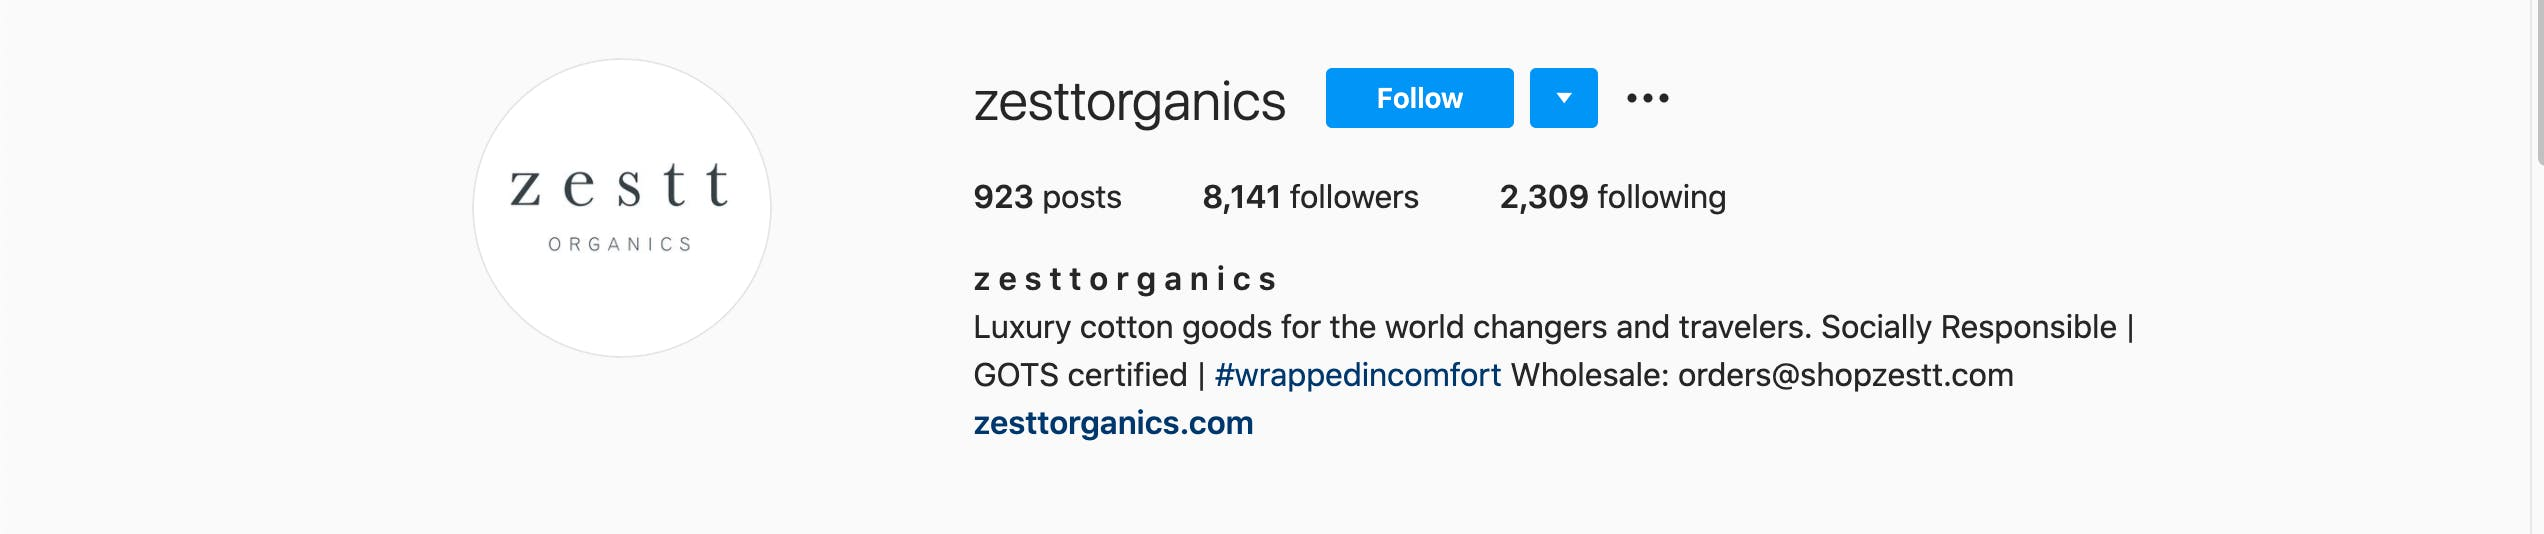 A Step By Step Guide To Crafting An Appealing Instagram Bio Zesttorganics Instagram Bio